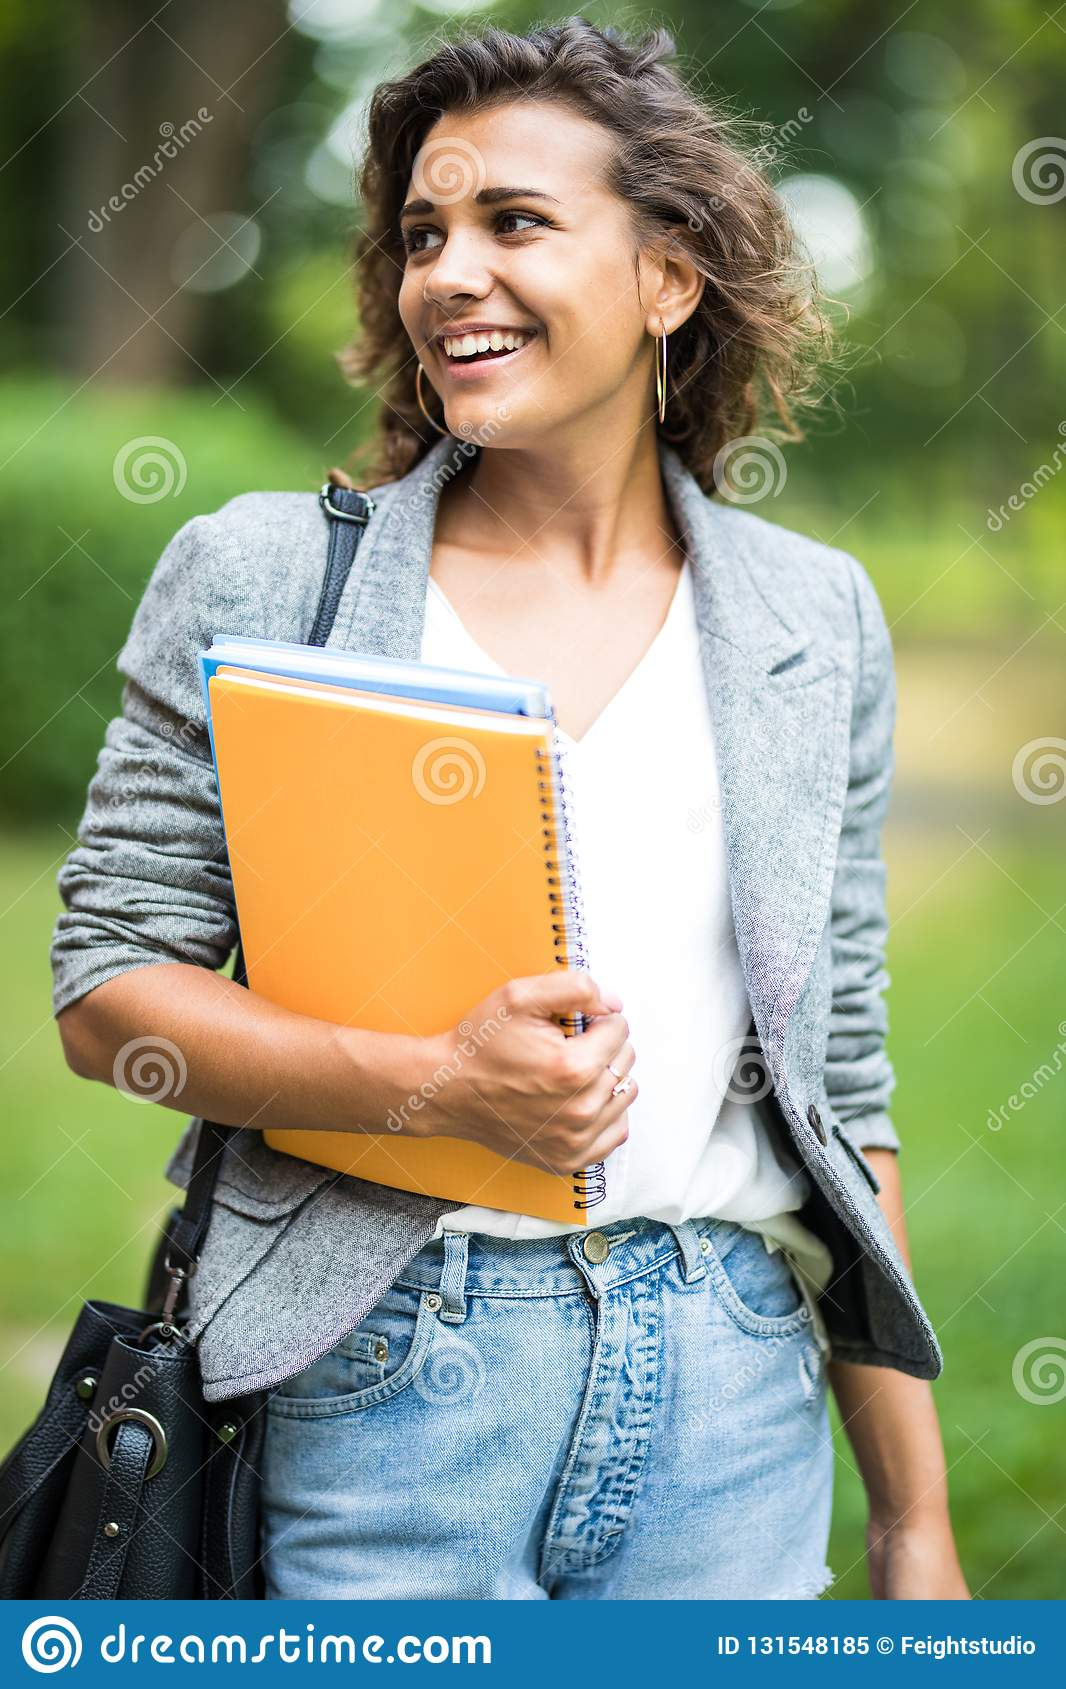 Jolly carefree girl embracing books in park while coming home after classes in university. Cheerful attractive young woman looking